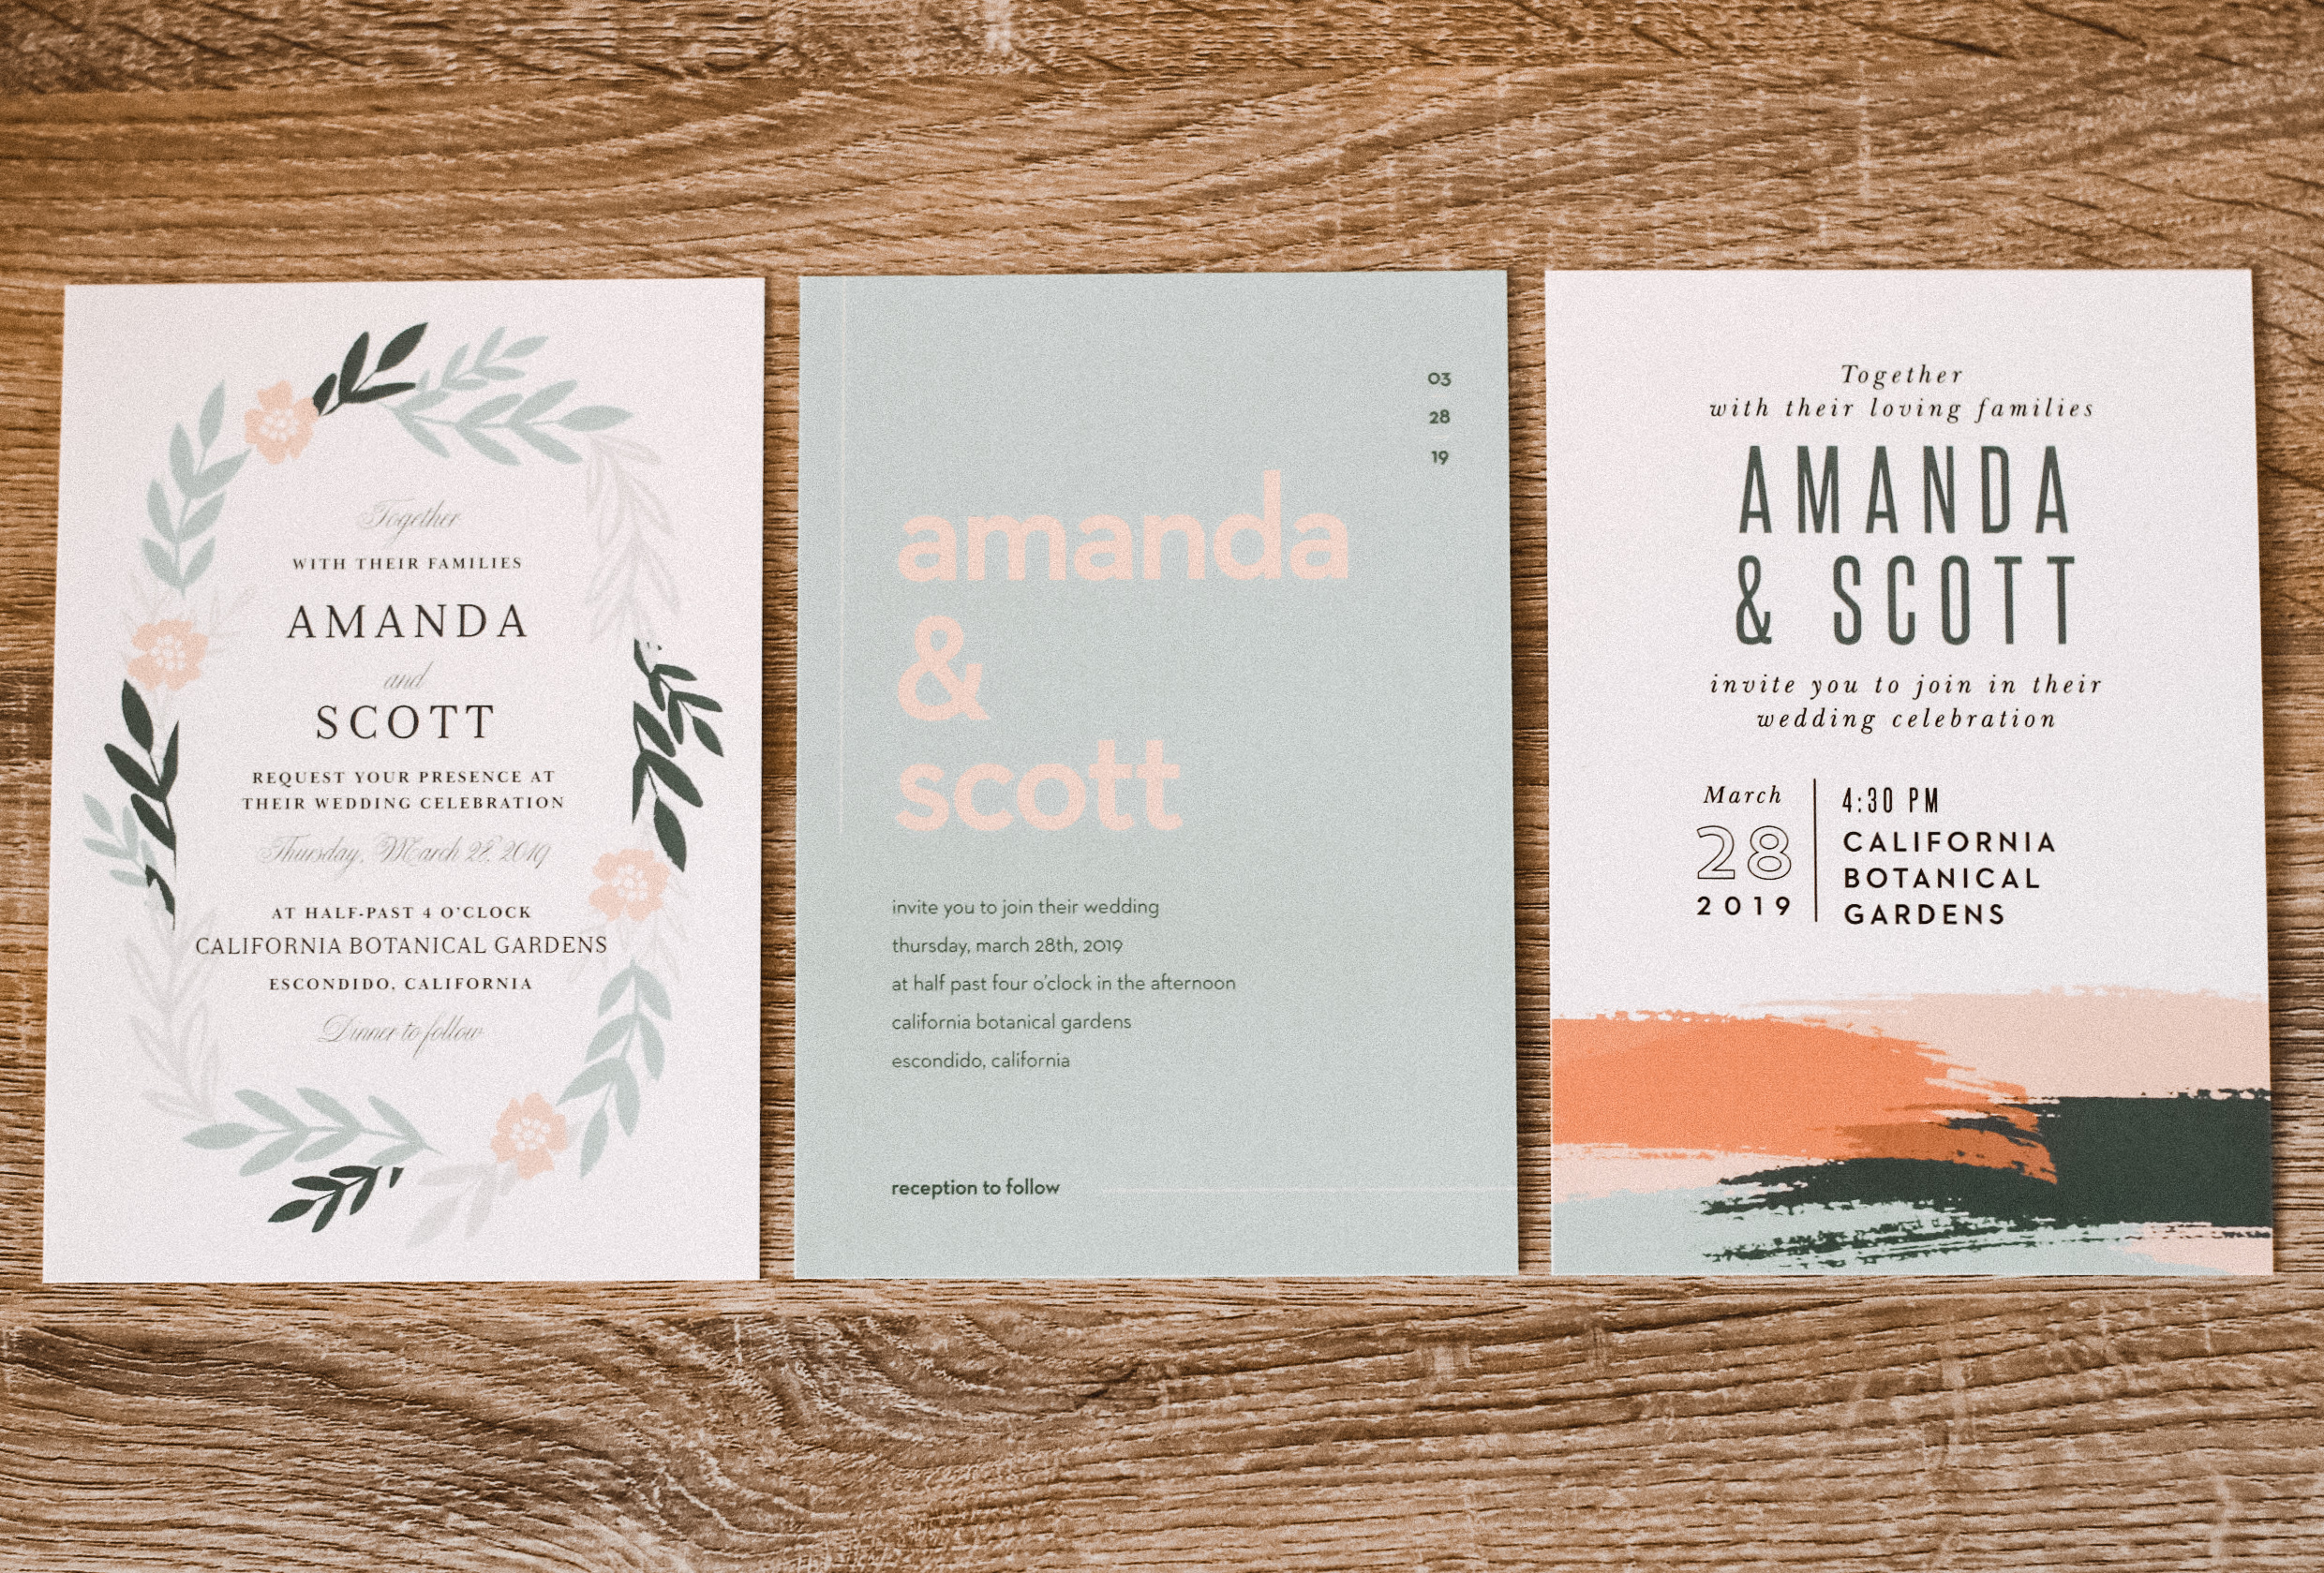 3 spring wedding invitations.jpg